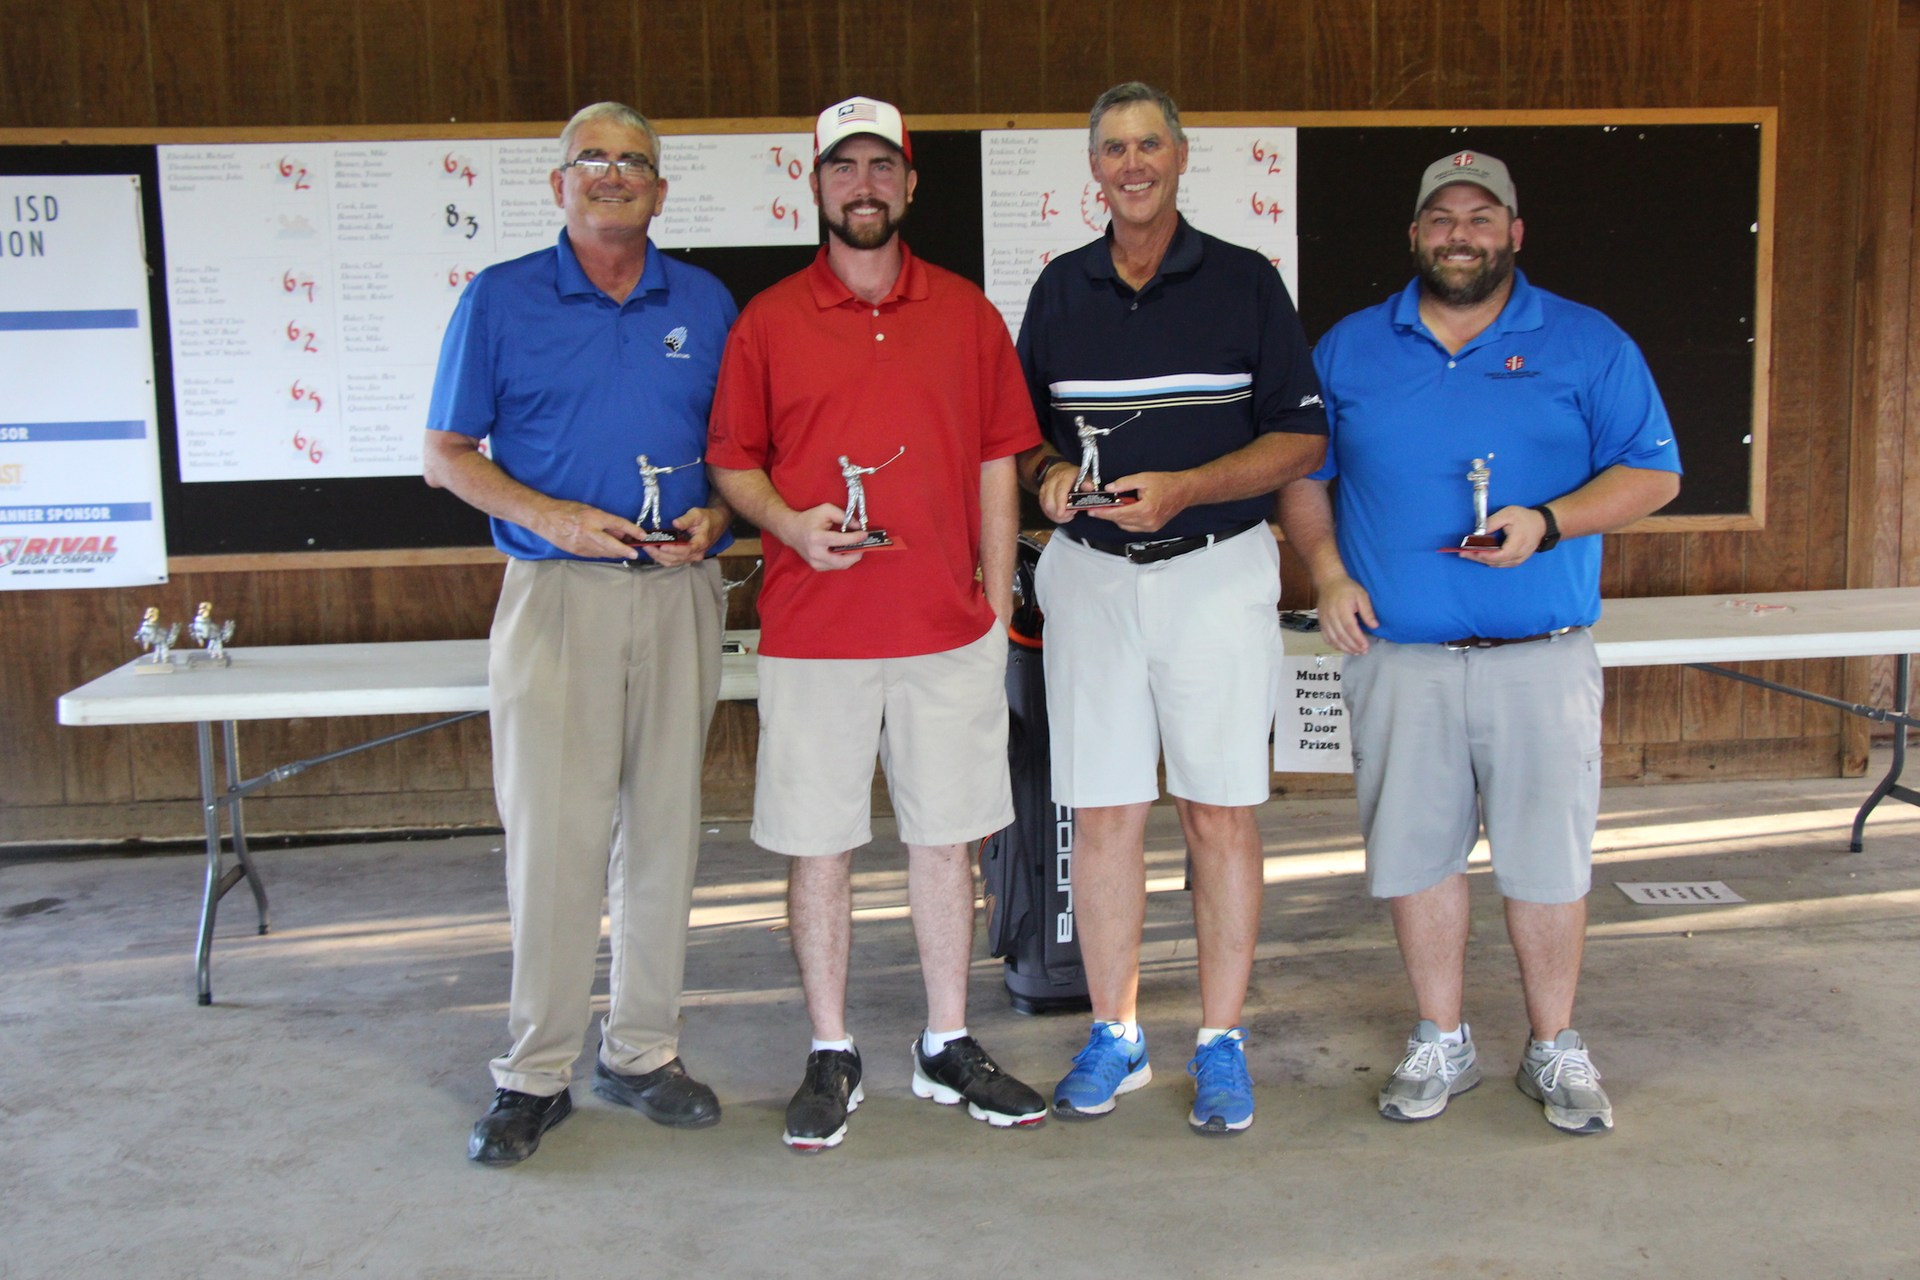 Third place winners were Victor Jones, Jared Jones, Boyd Weaver and Barry Jennings, representing Steele &  Freeman, the tournament's Title Sponsor.